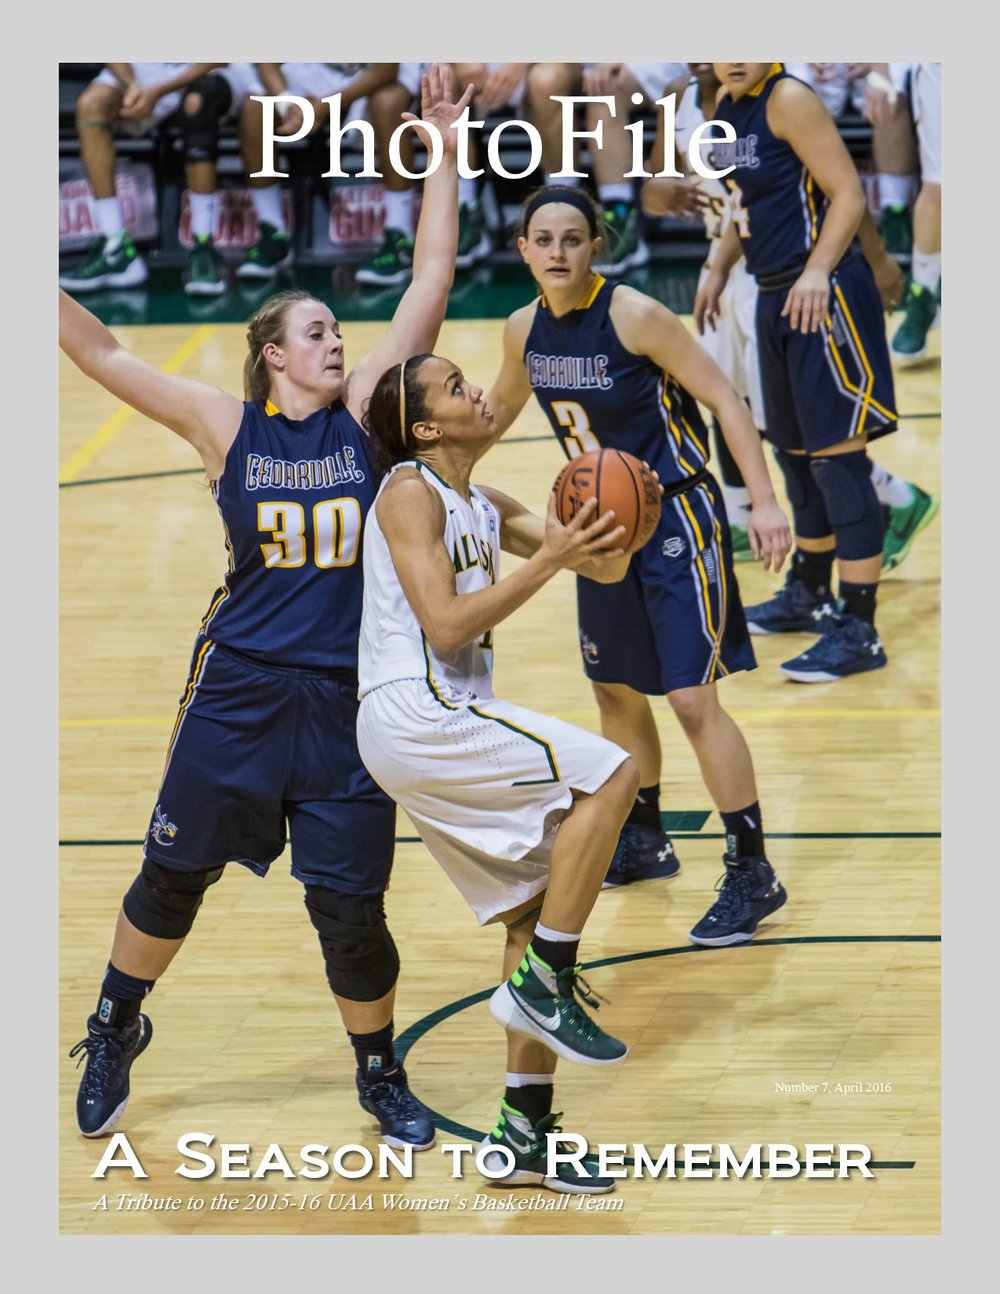 - A season to rememberThe 2015-16 University of Alaska-Anchorage (UAA) women's basketball team is featured in this PhotoFile. Mayhem characterized the smothering defense that carried the team to a 38-3 season and a trip to the NCAA D-II National Championship game. This issue is a tribute to that special team.